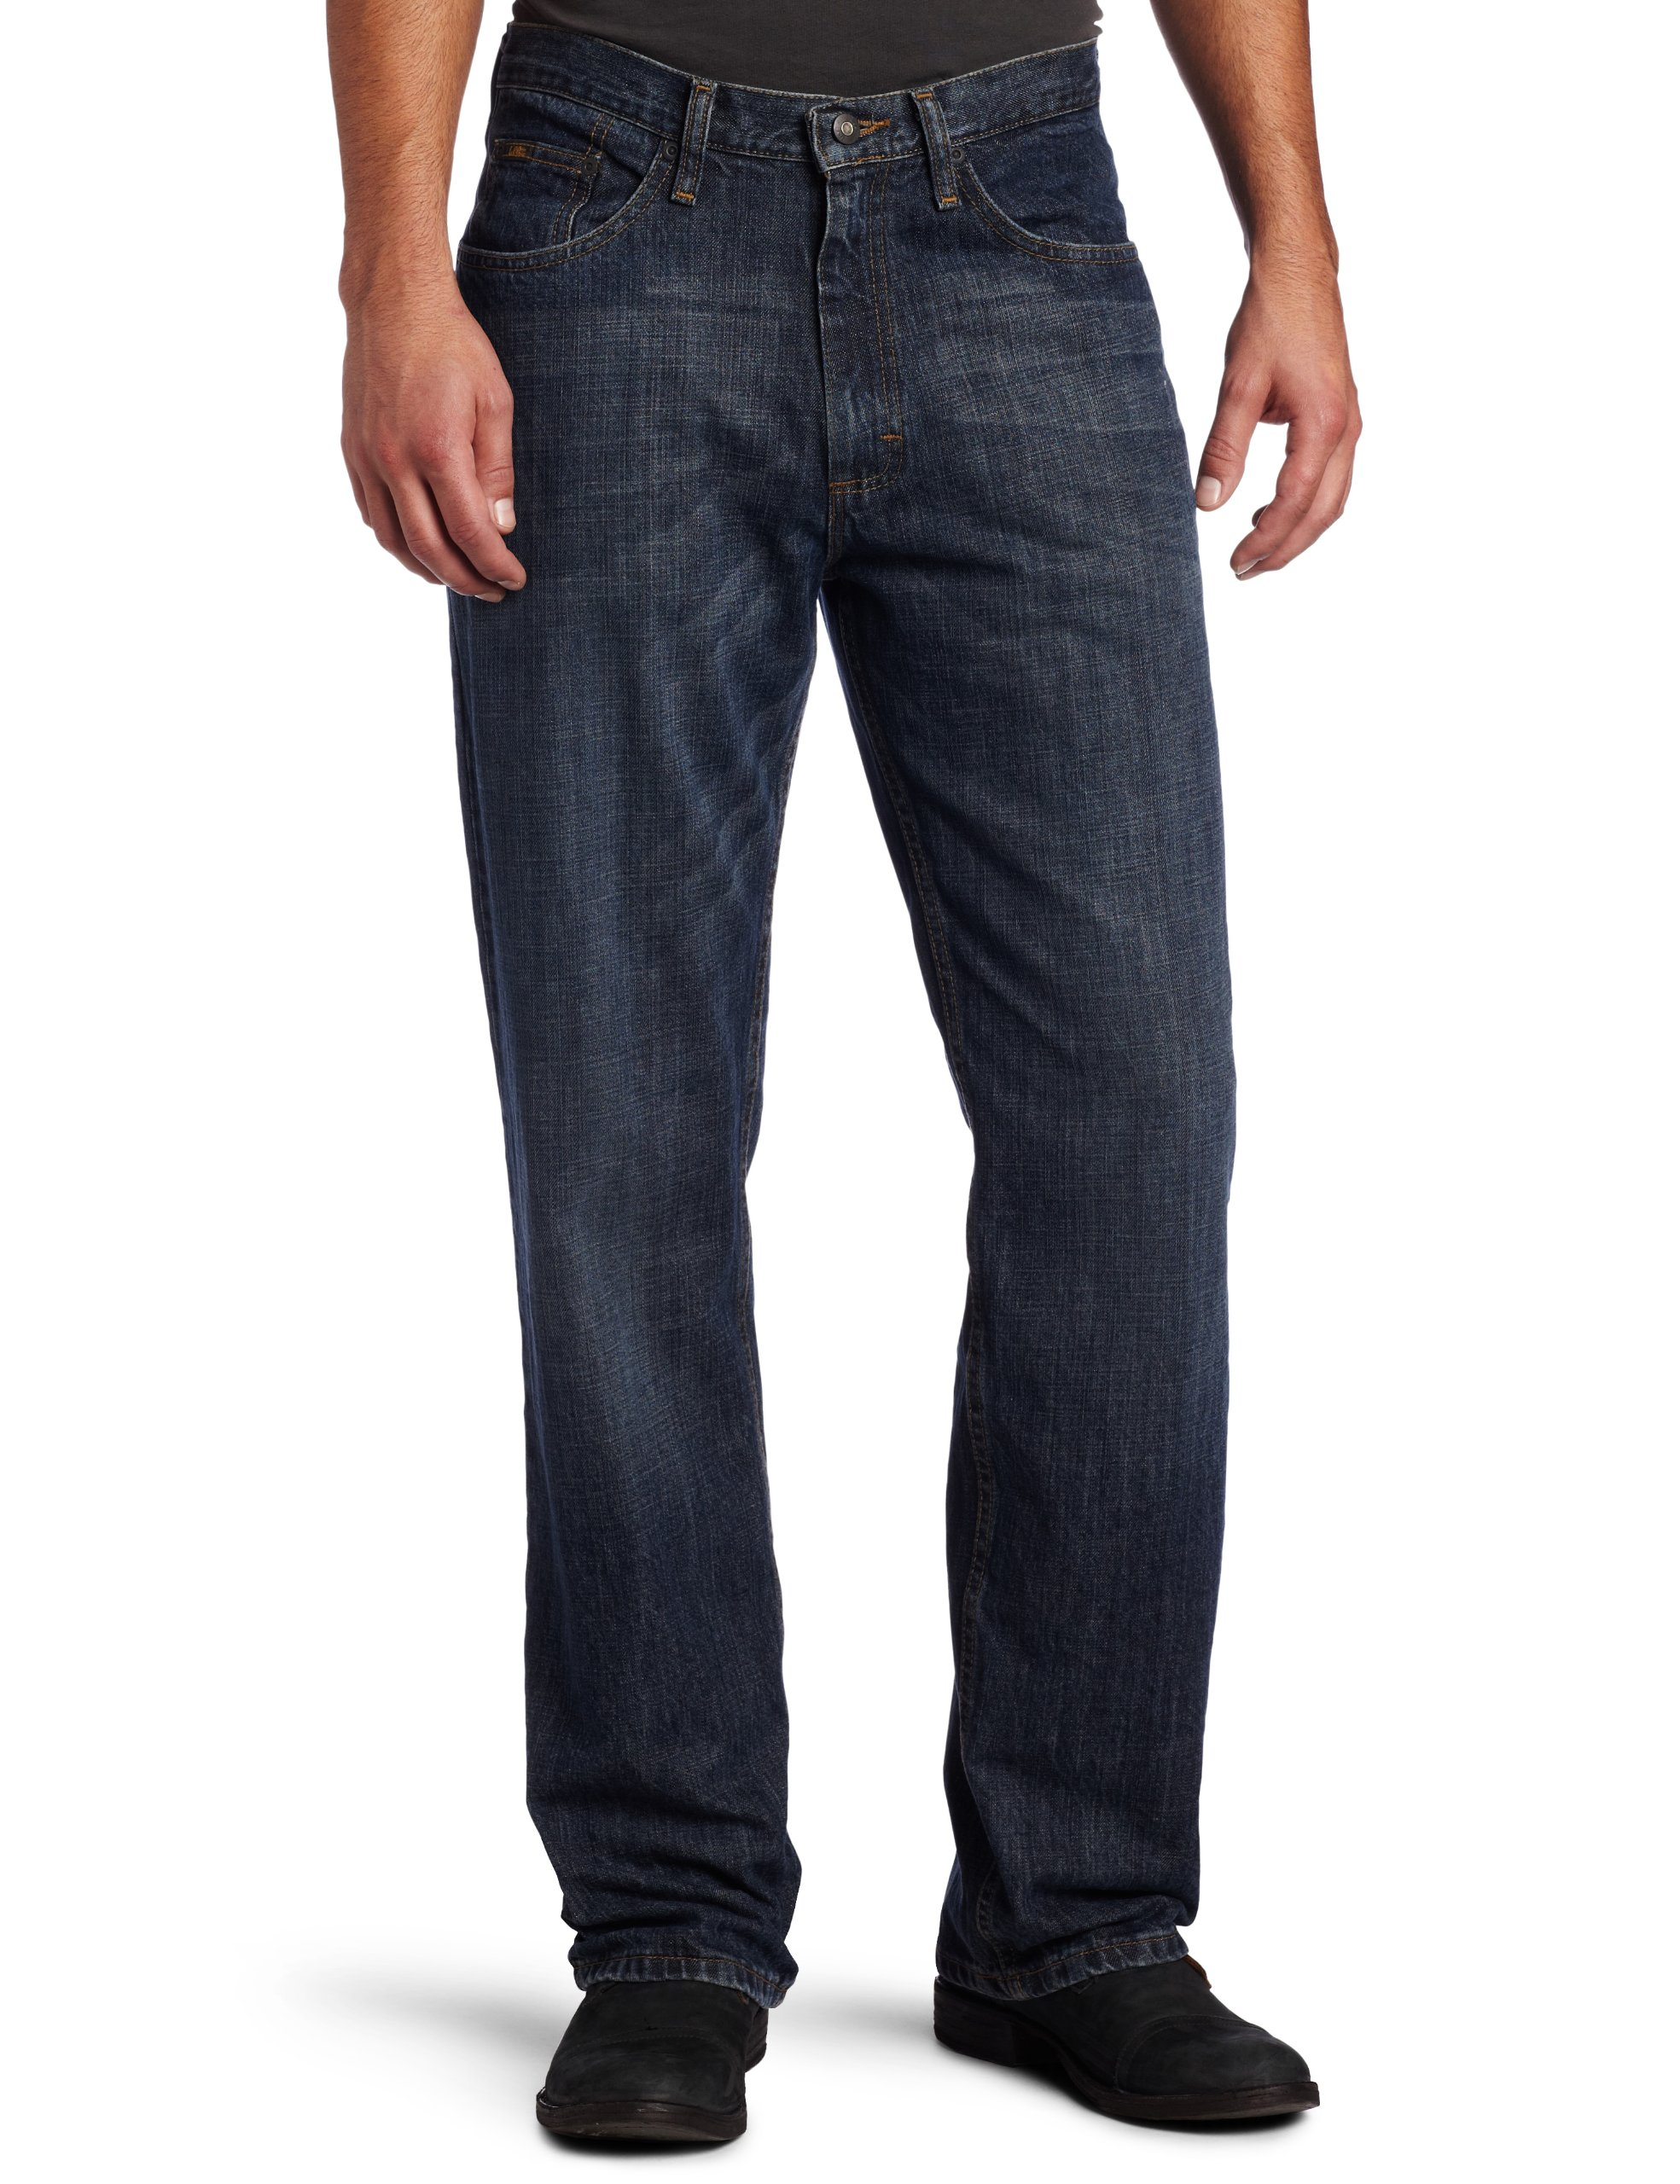 Lee Men's Premium Select Relaxed Fit Straight Leg Jean, Calypso Wiskered, 40W x 34L